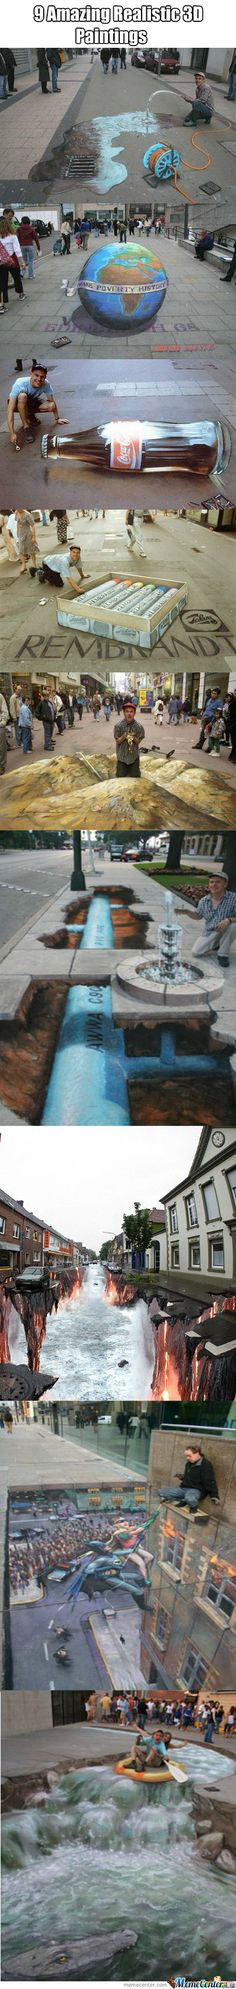 9 Amazing street paintings.  Some of these freaked me out!